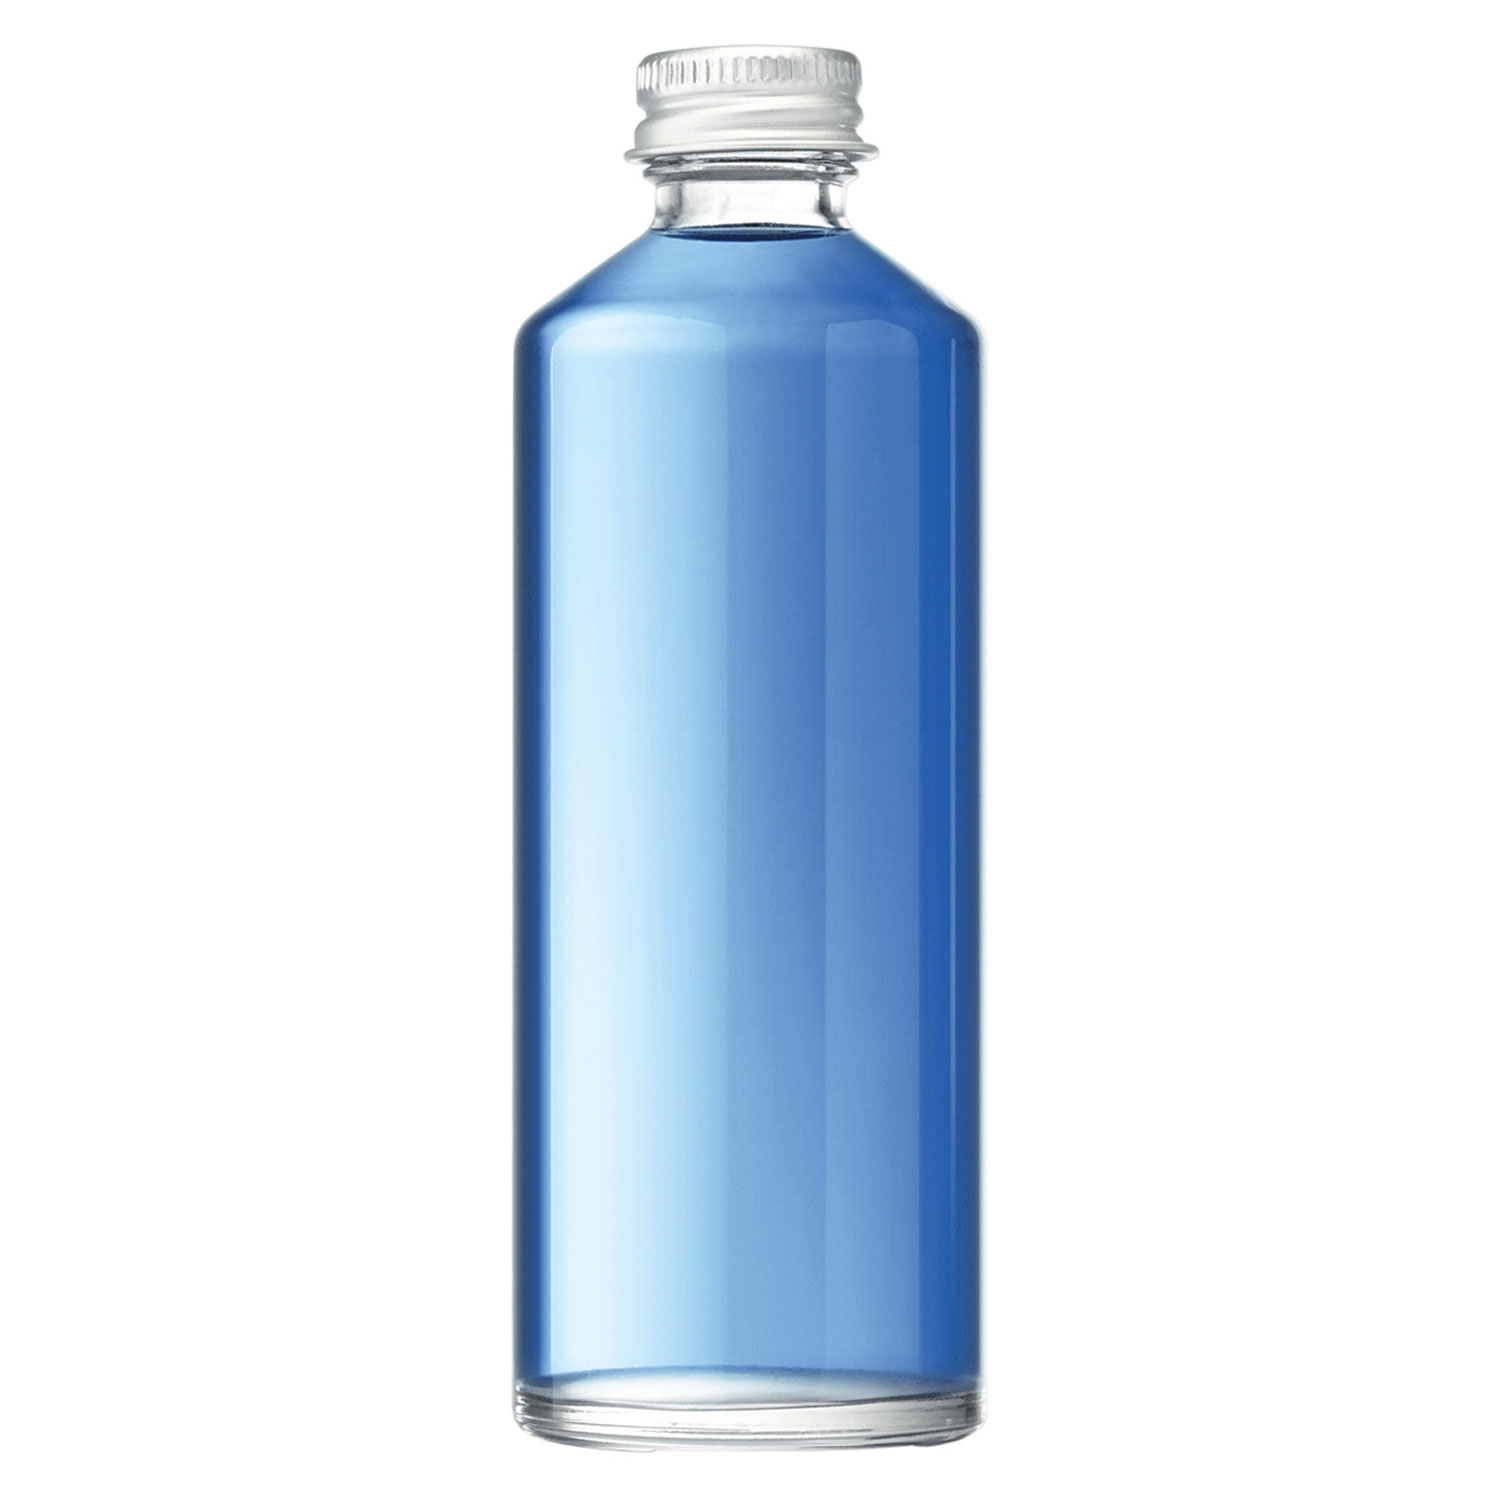 A*Men - Eau de Toilette Eco-Refill Bottle